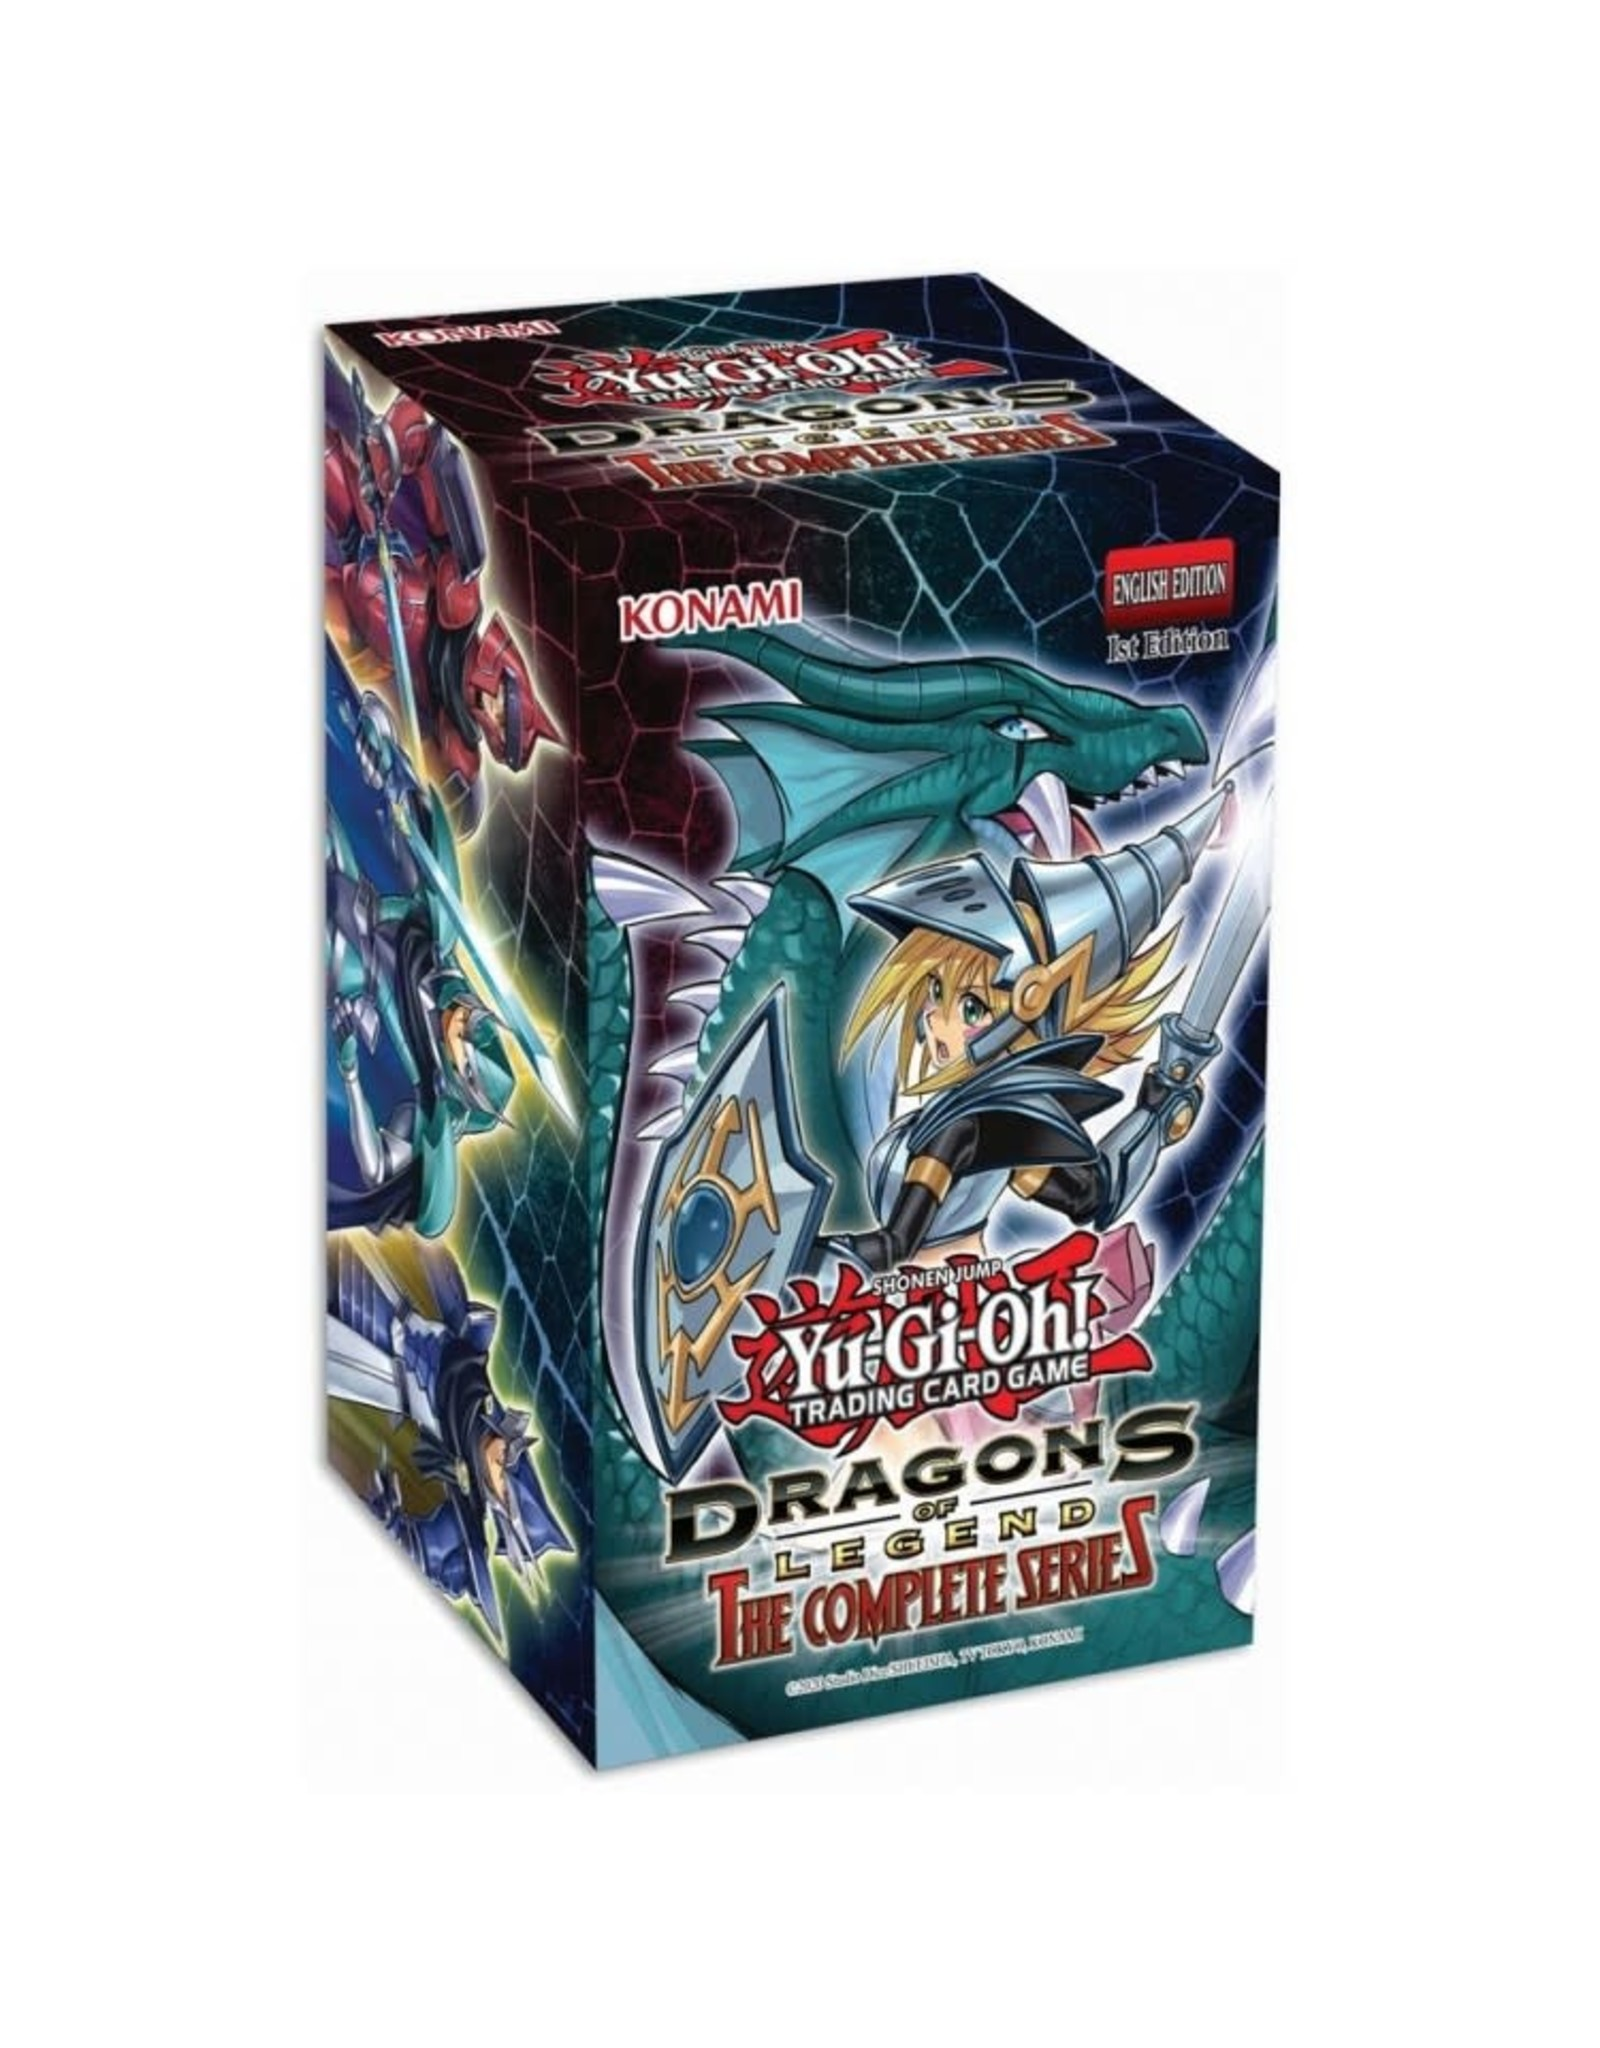 Dragons of Legend: The Complete Series - PREORDER, AVAILABLE SEPTEMBER 11, 2020